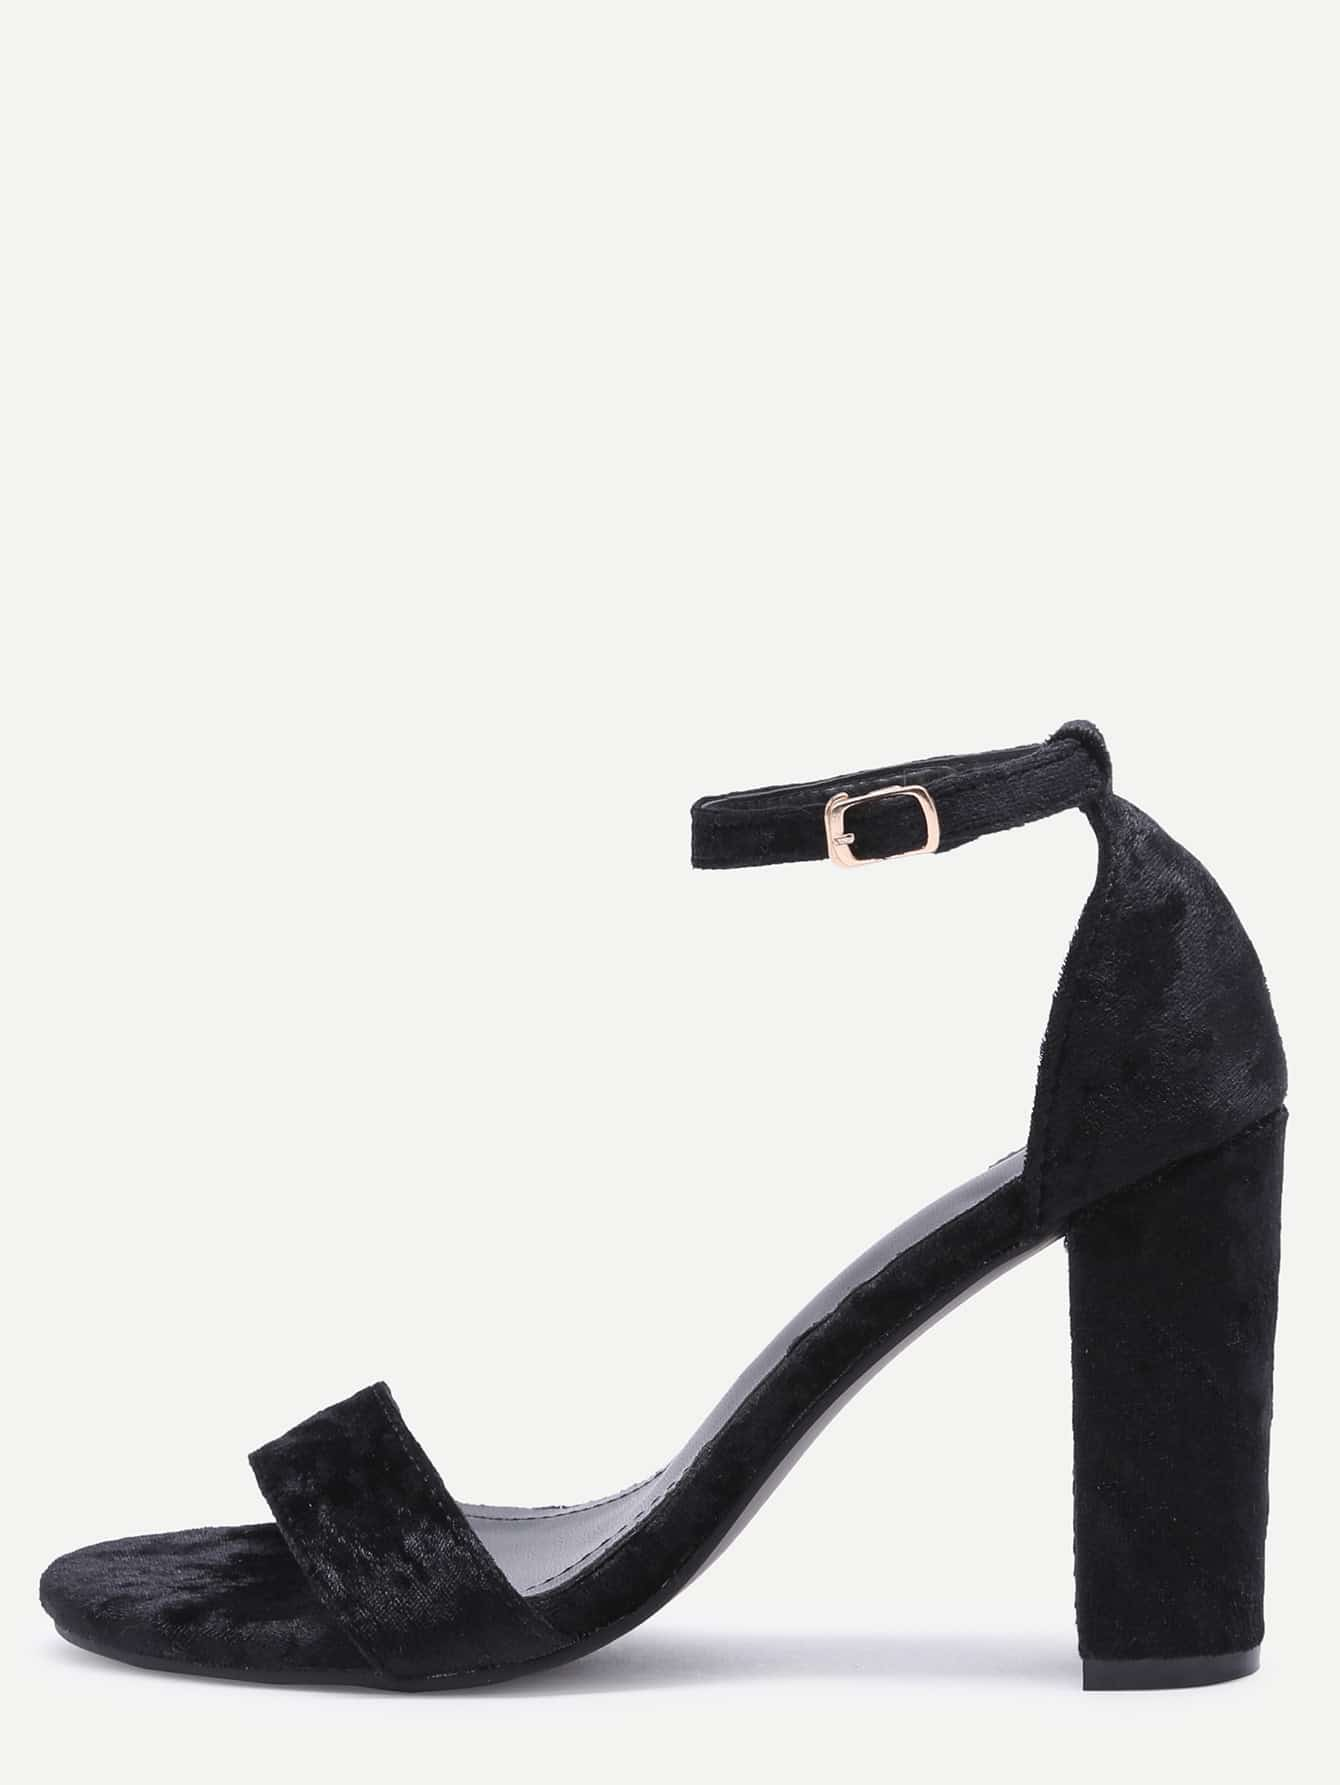 Buy Black Velvet Peep Toe High Heel Mary Jane Shoes